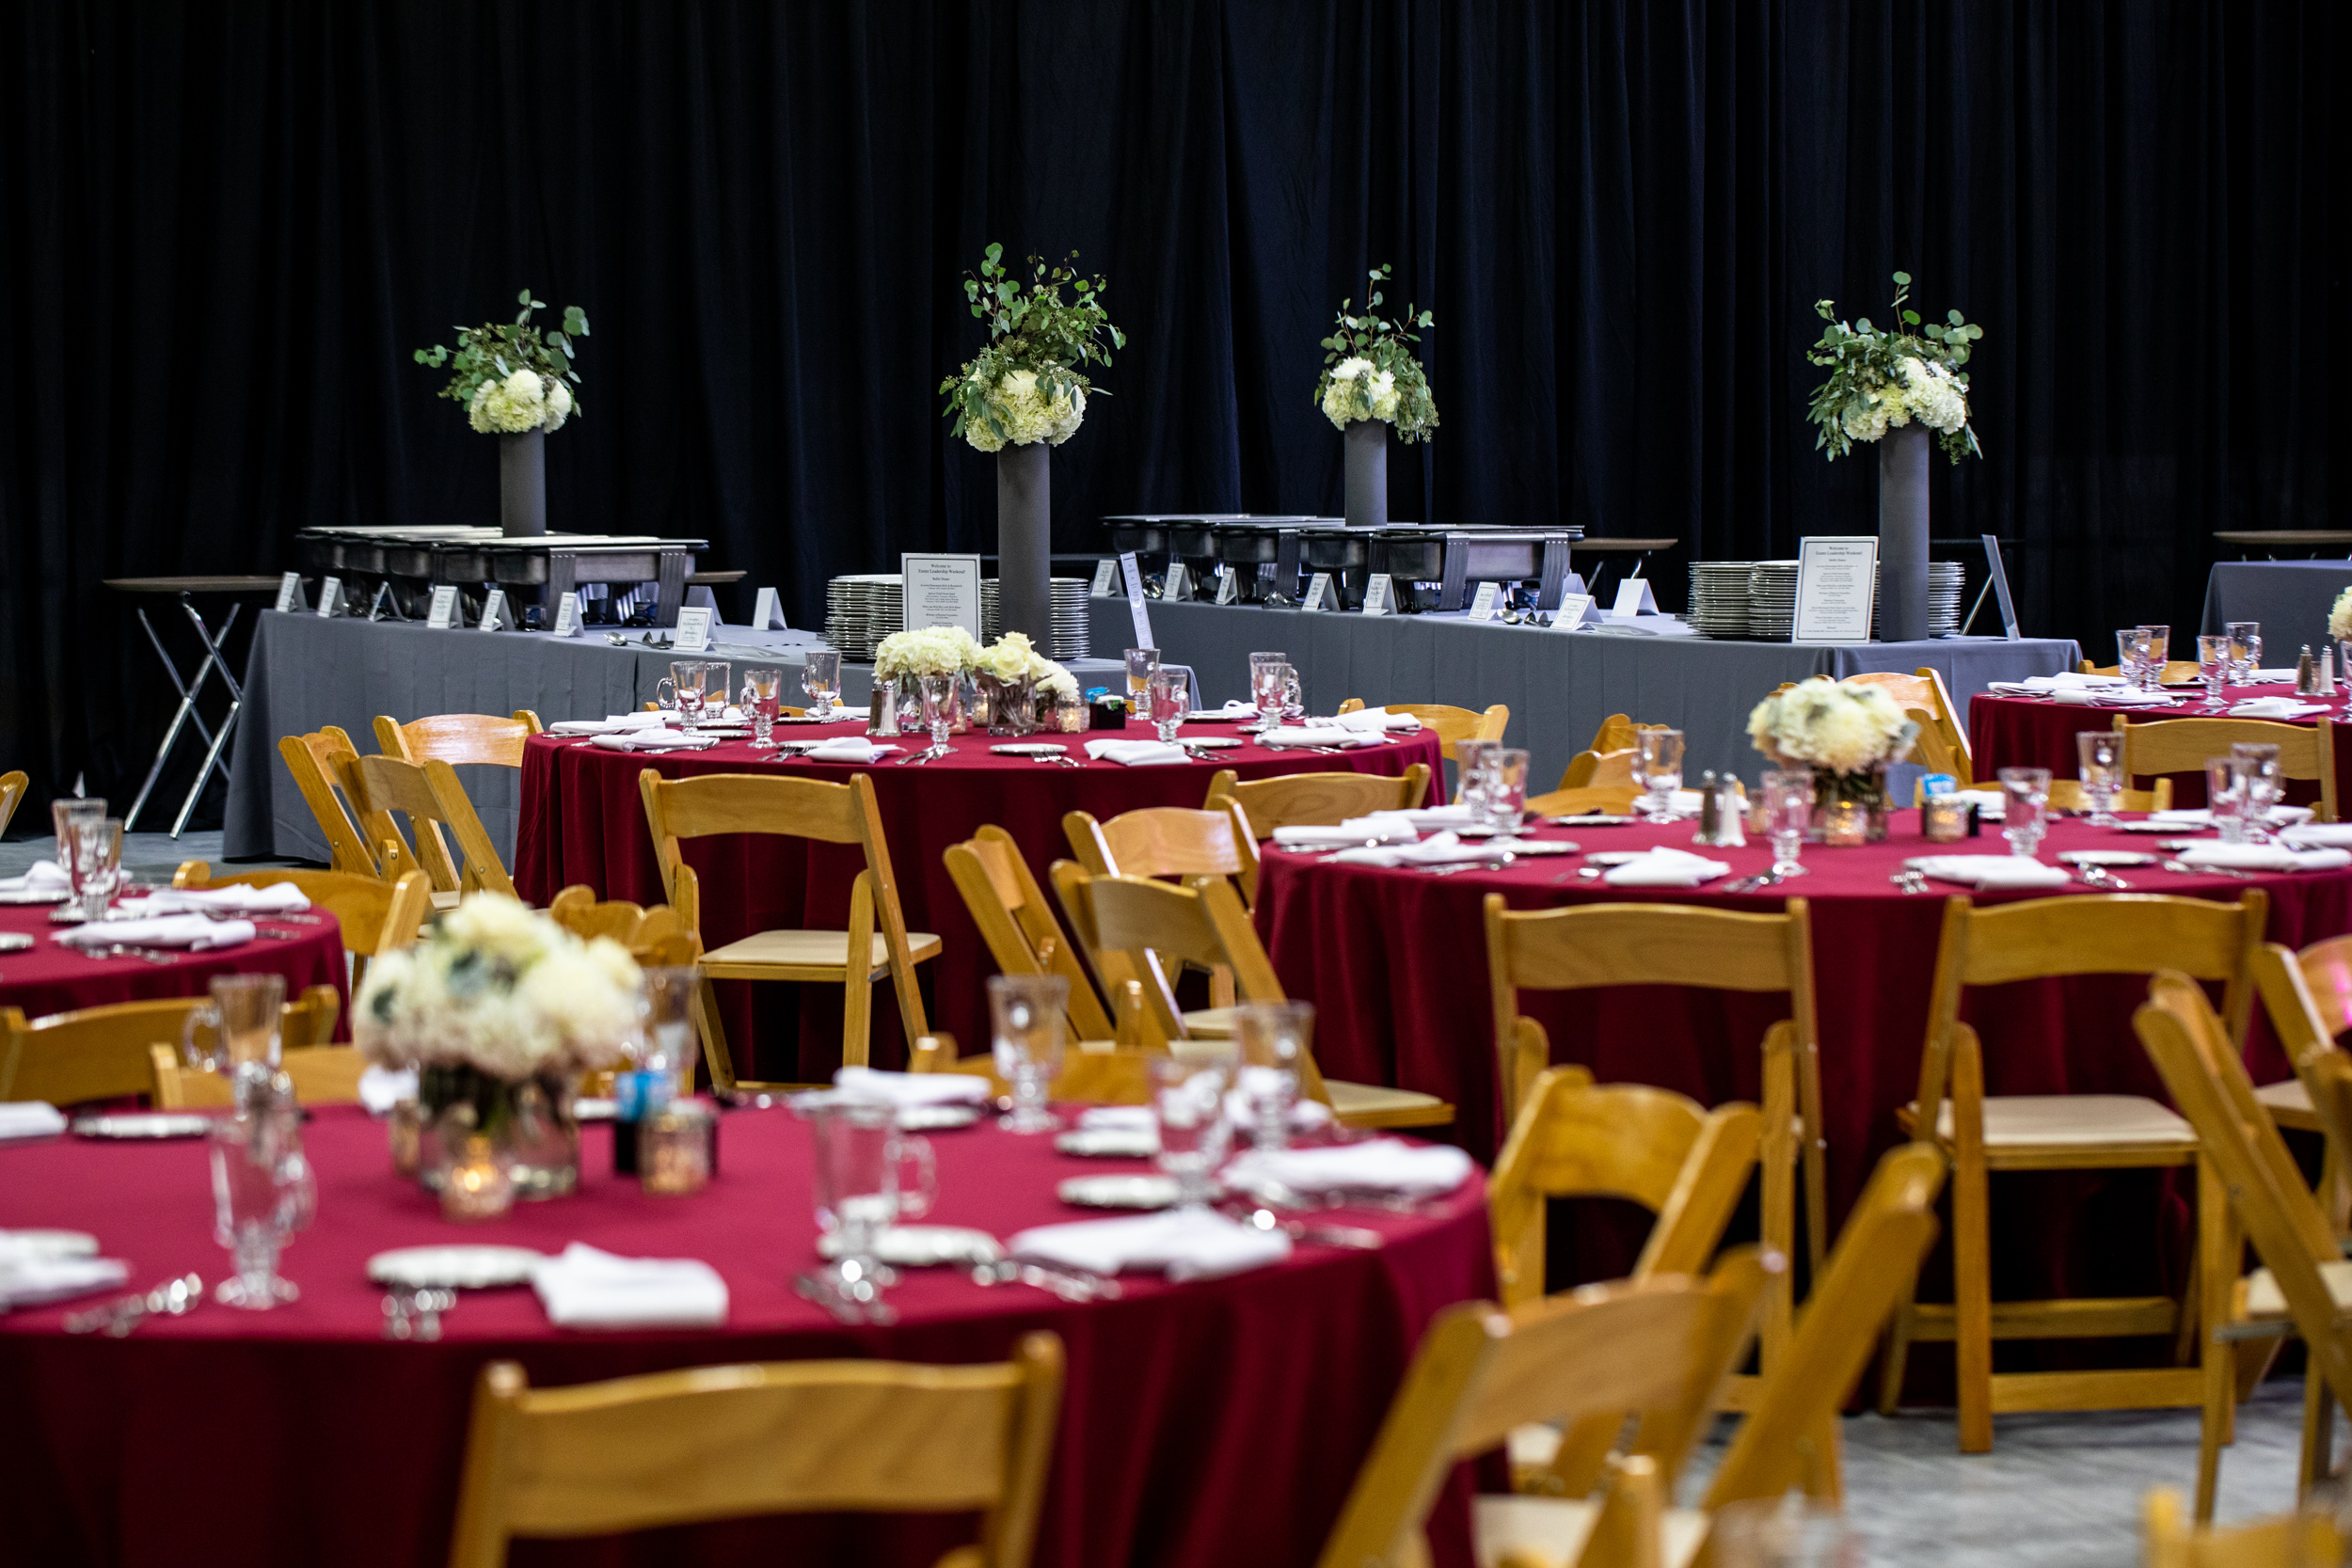 Corporate_Production_Phillips_Exeter_Academy_Pizzuti_Awards_Dinner_table_decor_drape_lighting_setup